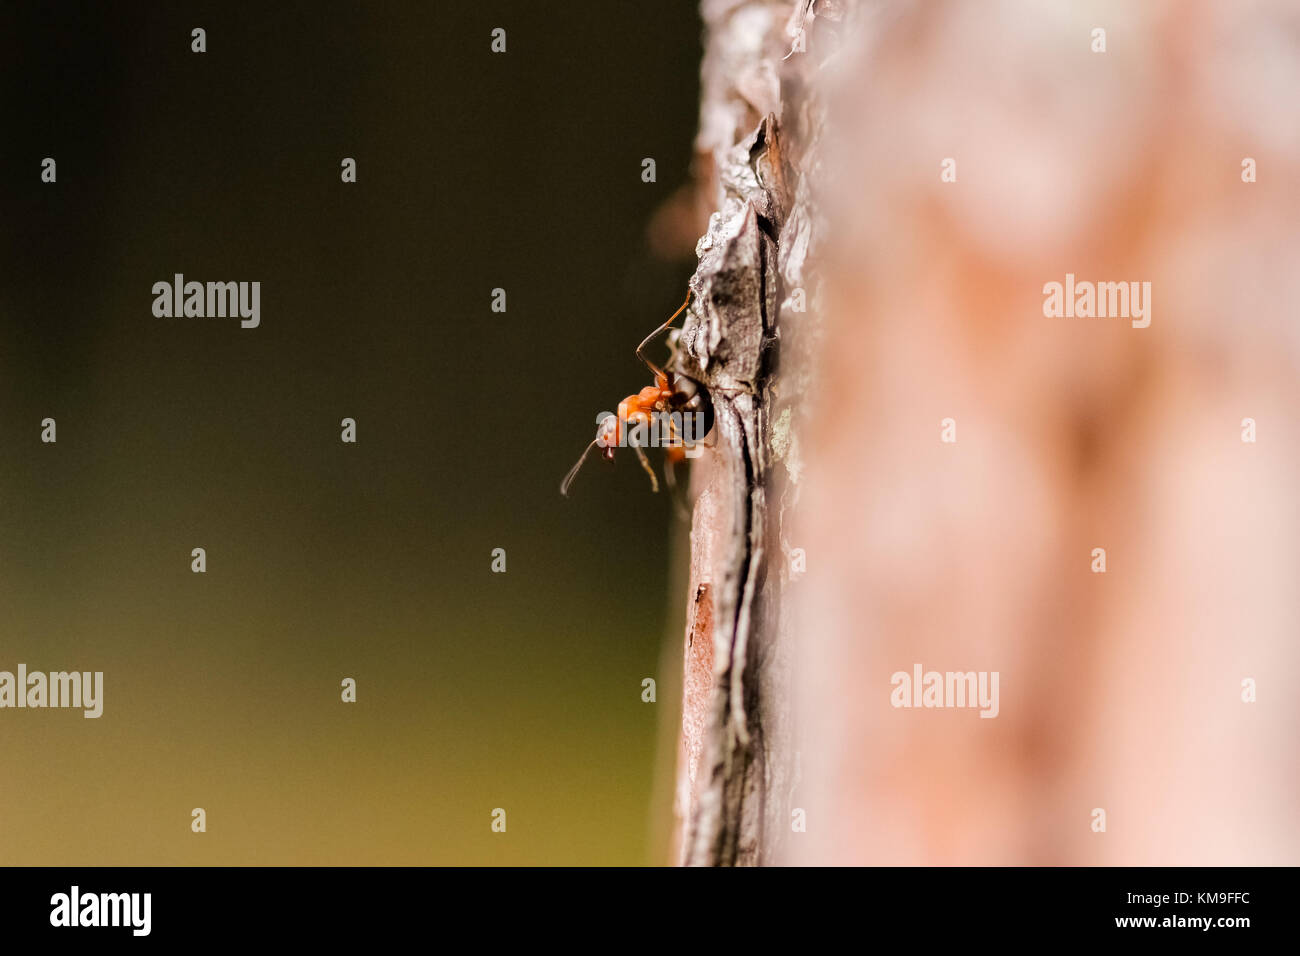 An ant on the side of a tree, defying the laws of gravity. - Stock Image